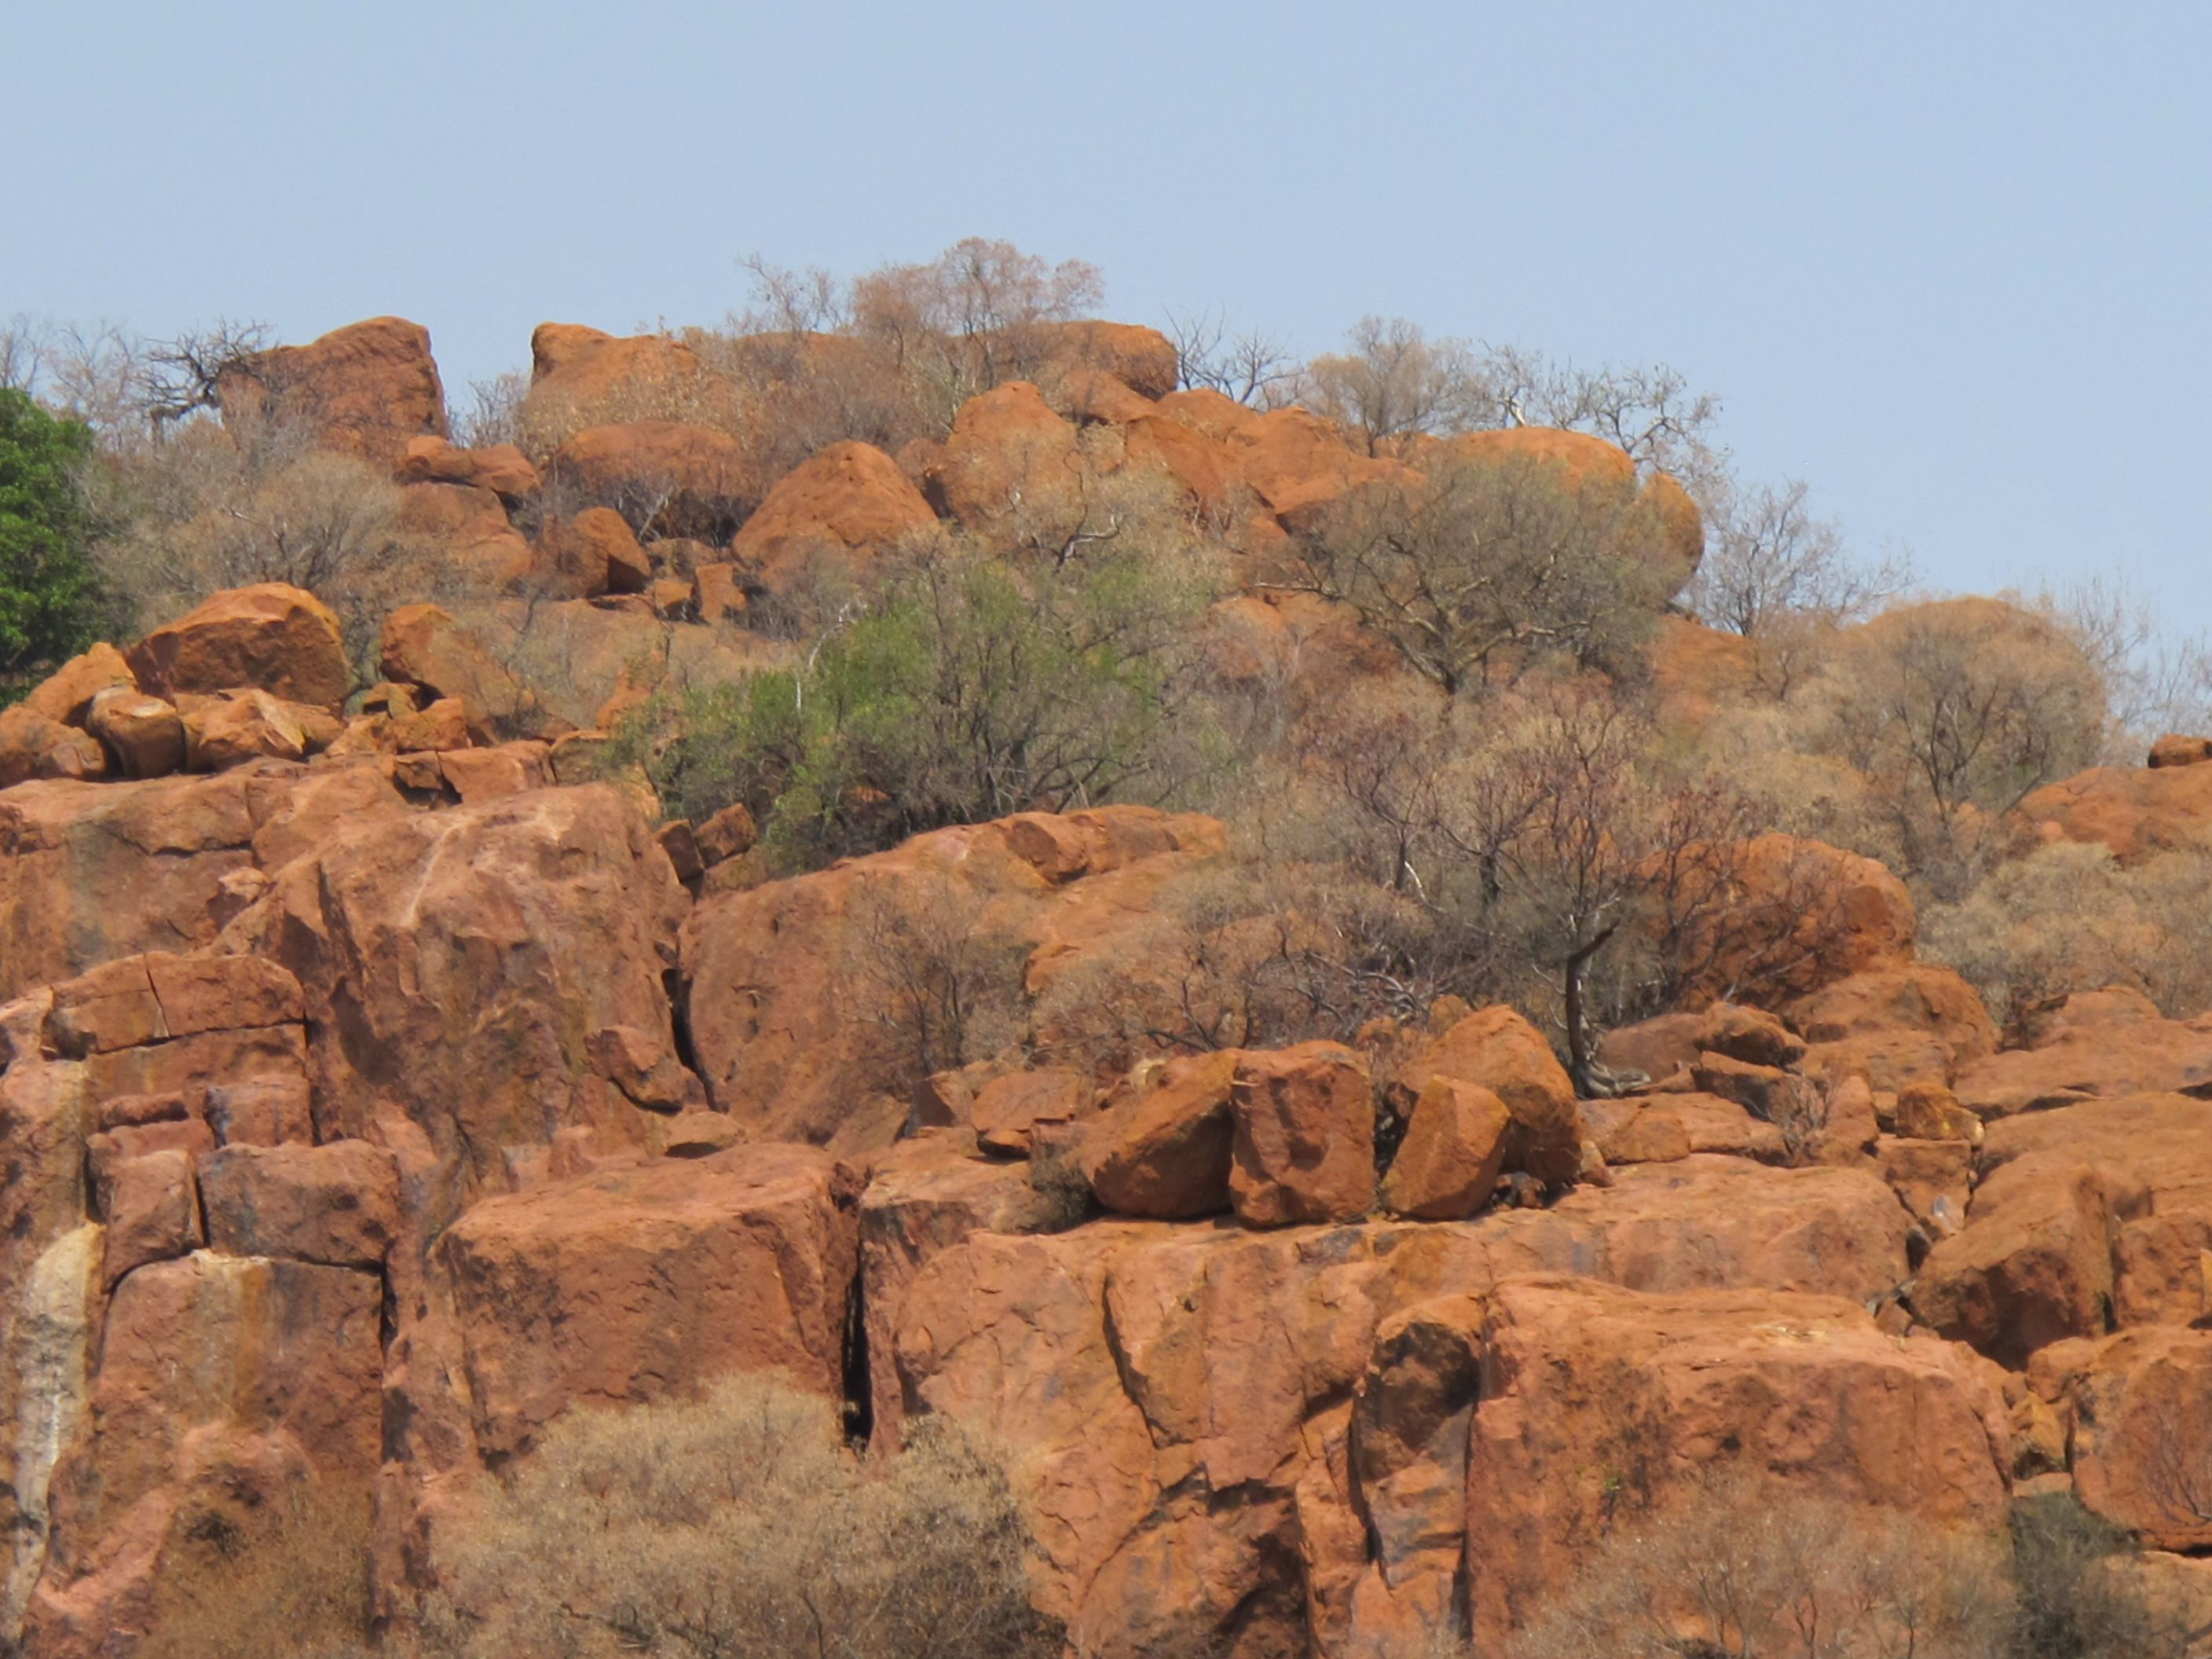 Pilanesberg Leopards Like To Hide In These Rocks But We Didn T See Any